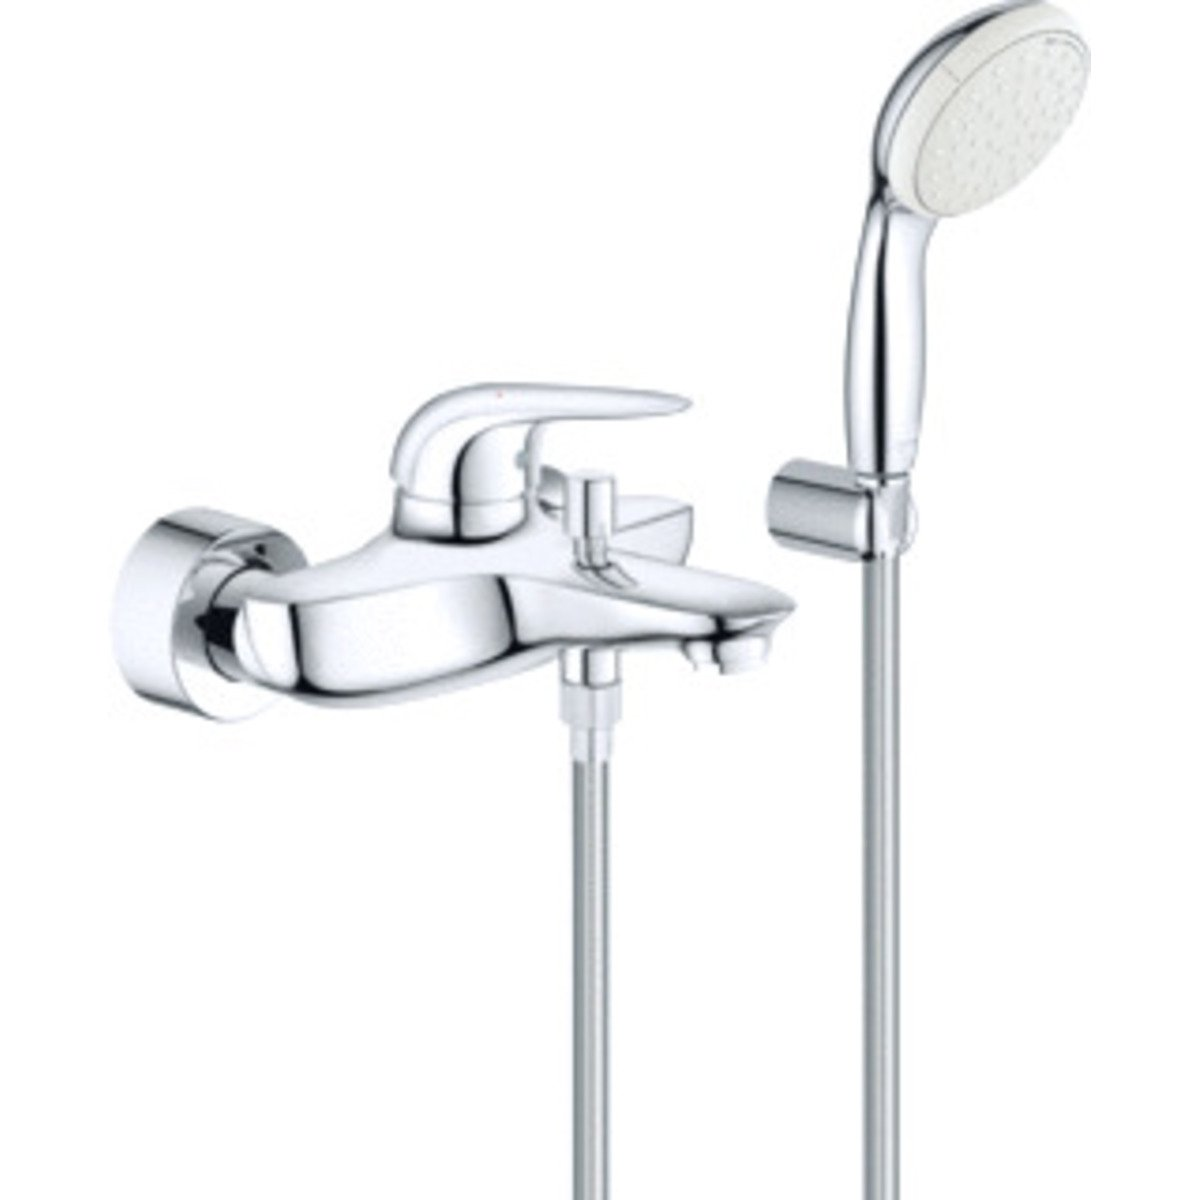 Grohe eurostyle new mitigeur bain mural entraxe 15cm avec for Mitigeur mural grohe